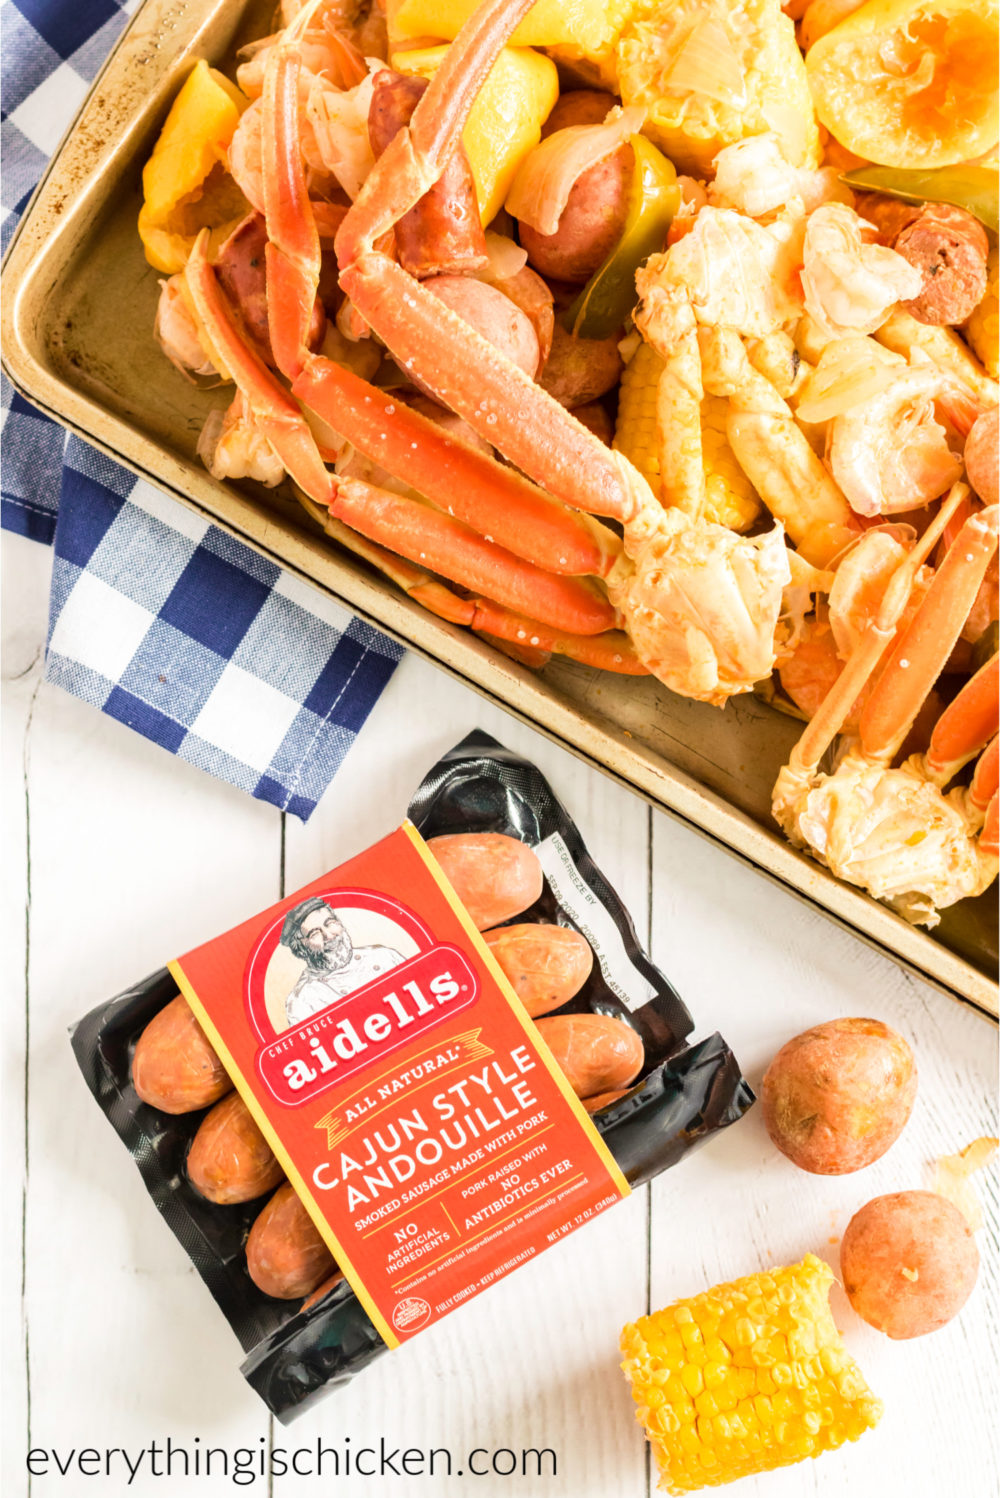 Sausage in a package that was used in the cajun seafood boil.